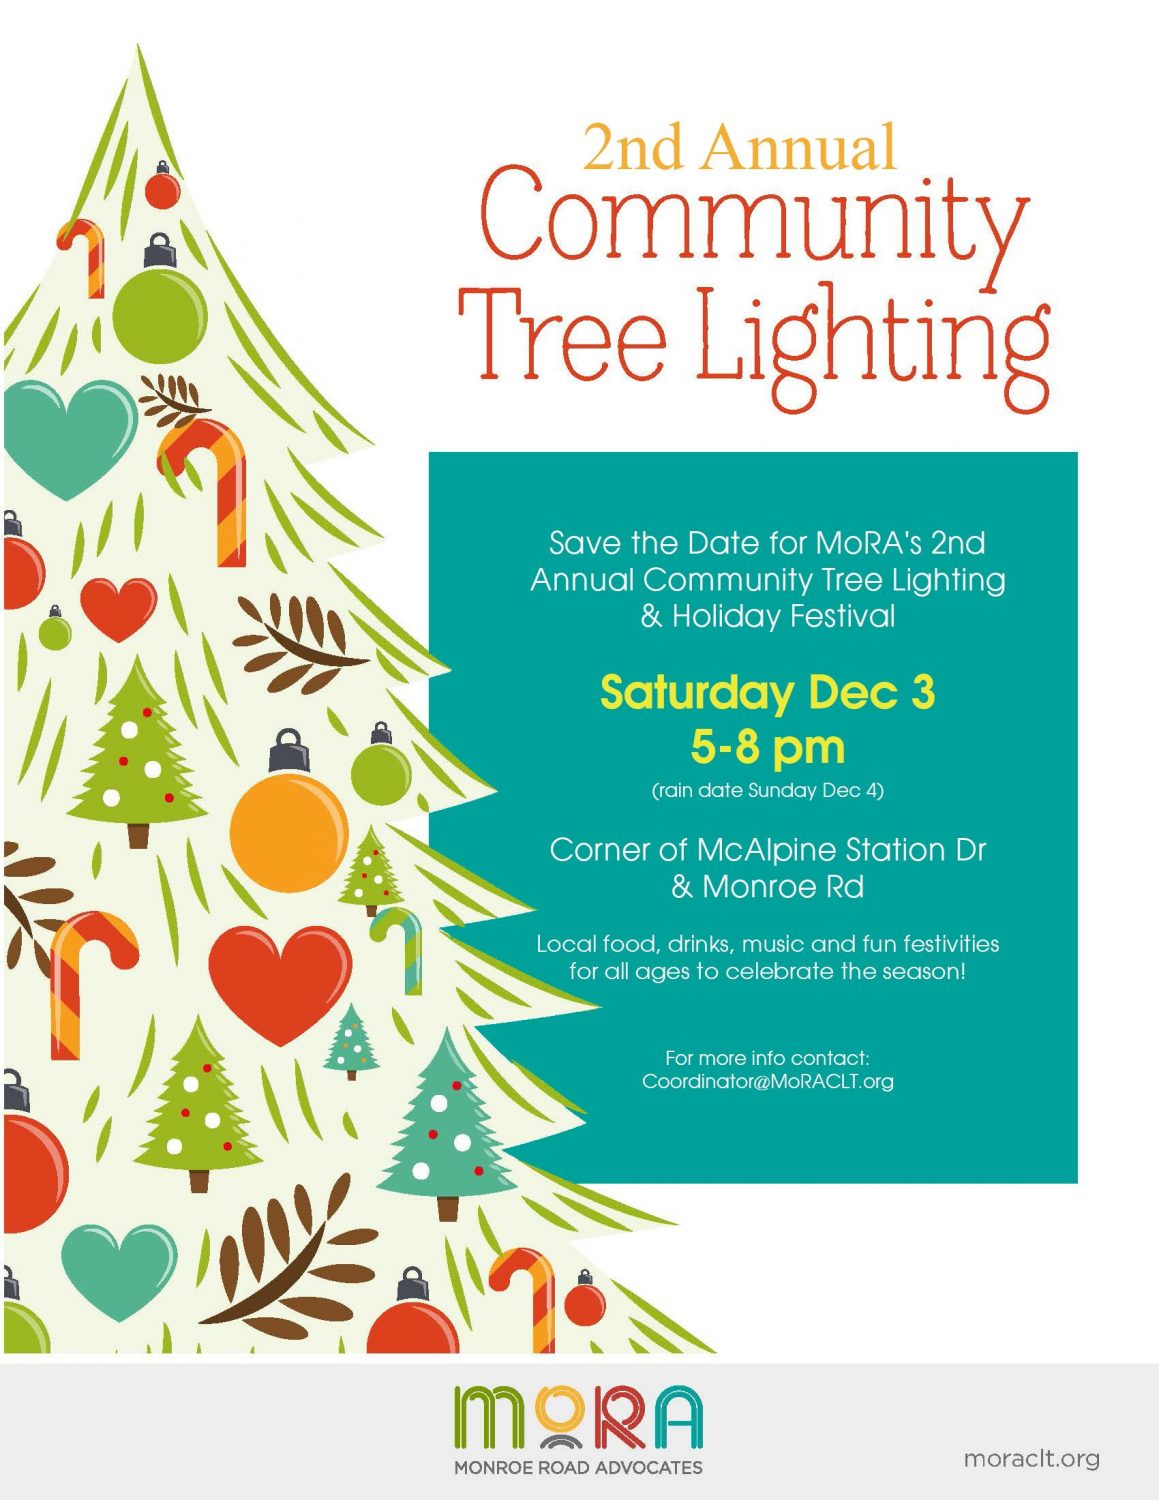 MoRA's 2nd Annual Holiday Festival and Tree Lighting